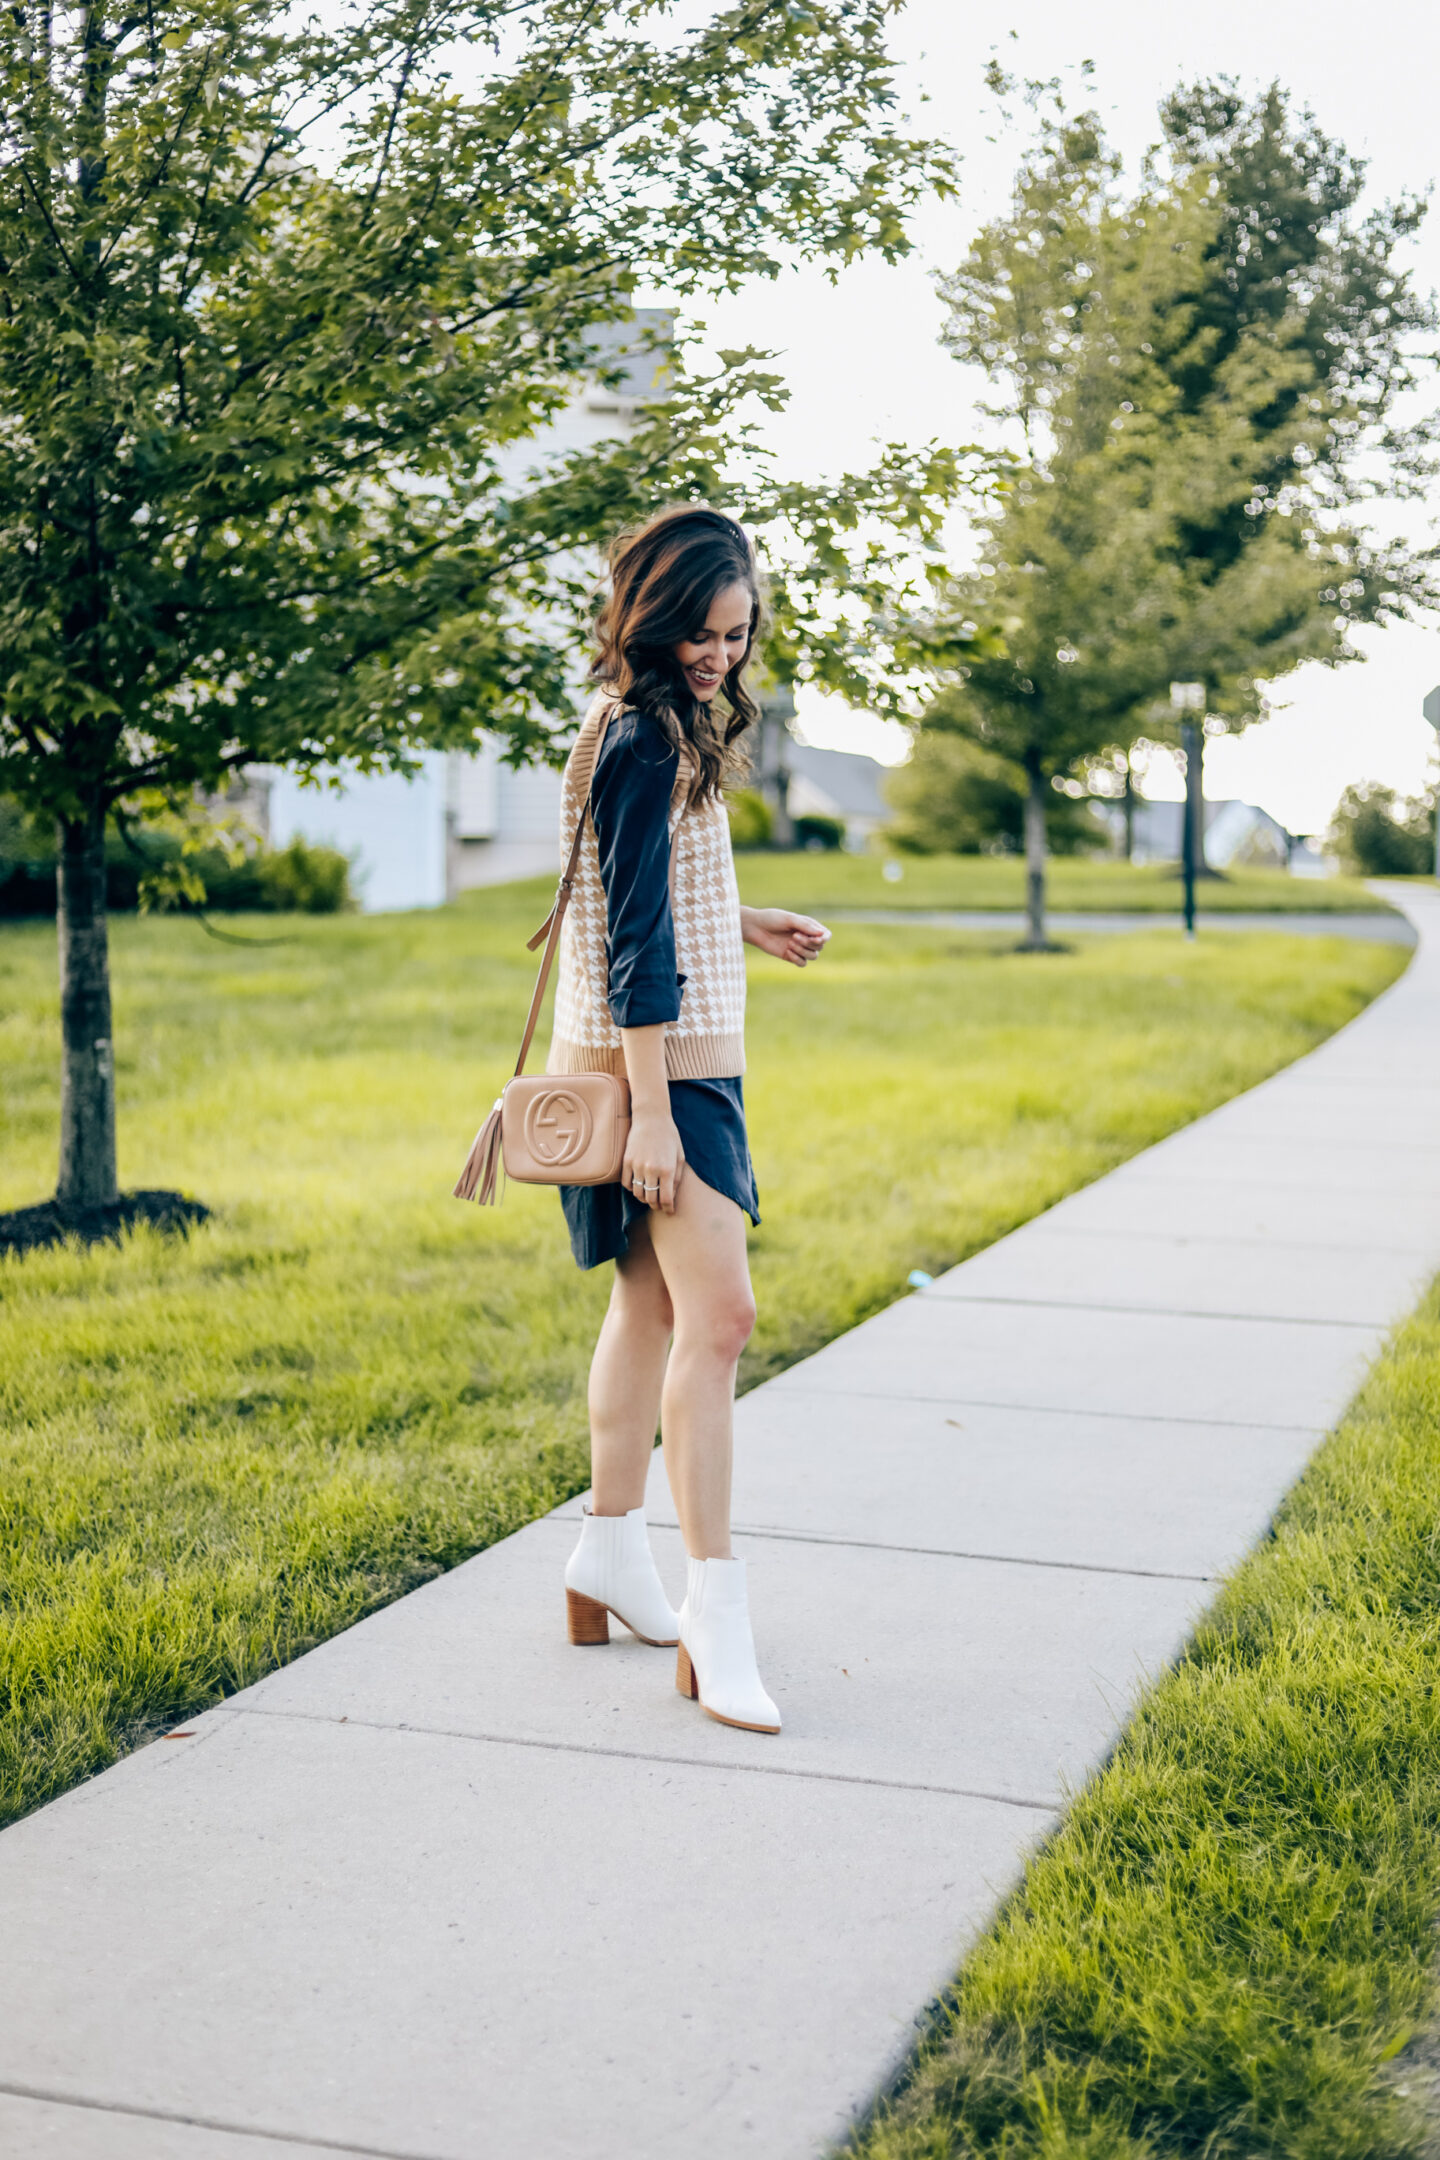 HOW TO STYLE A SWEATER VEST FOR FALL - Chic Sweater Vest Outfit Idea from Amazon on Coming Up Roses!